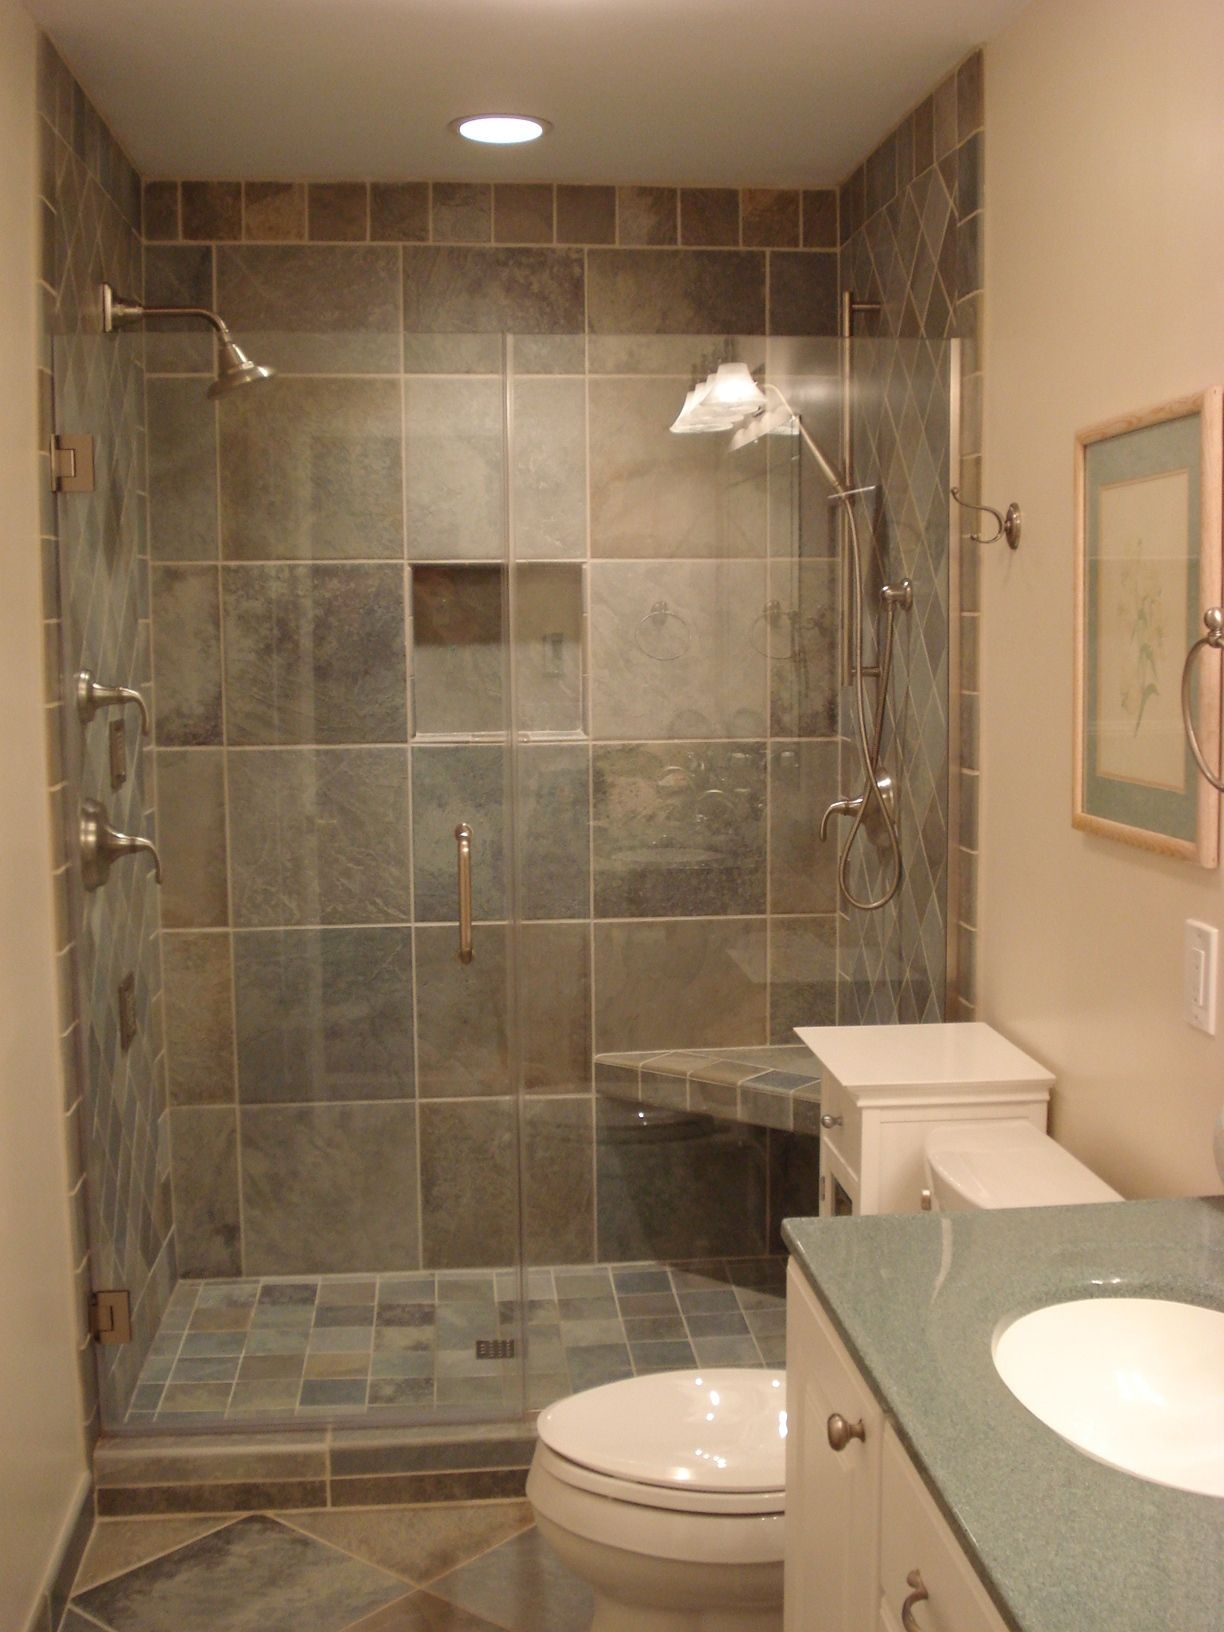 How Much Is It To Remodel A Small Bathroom Home Design Pertaining To ...